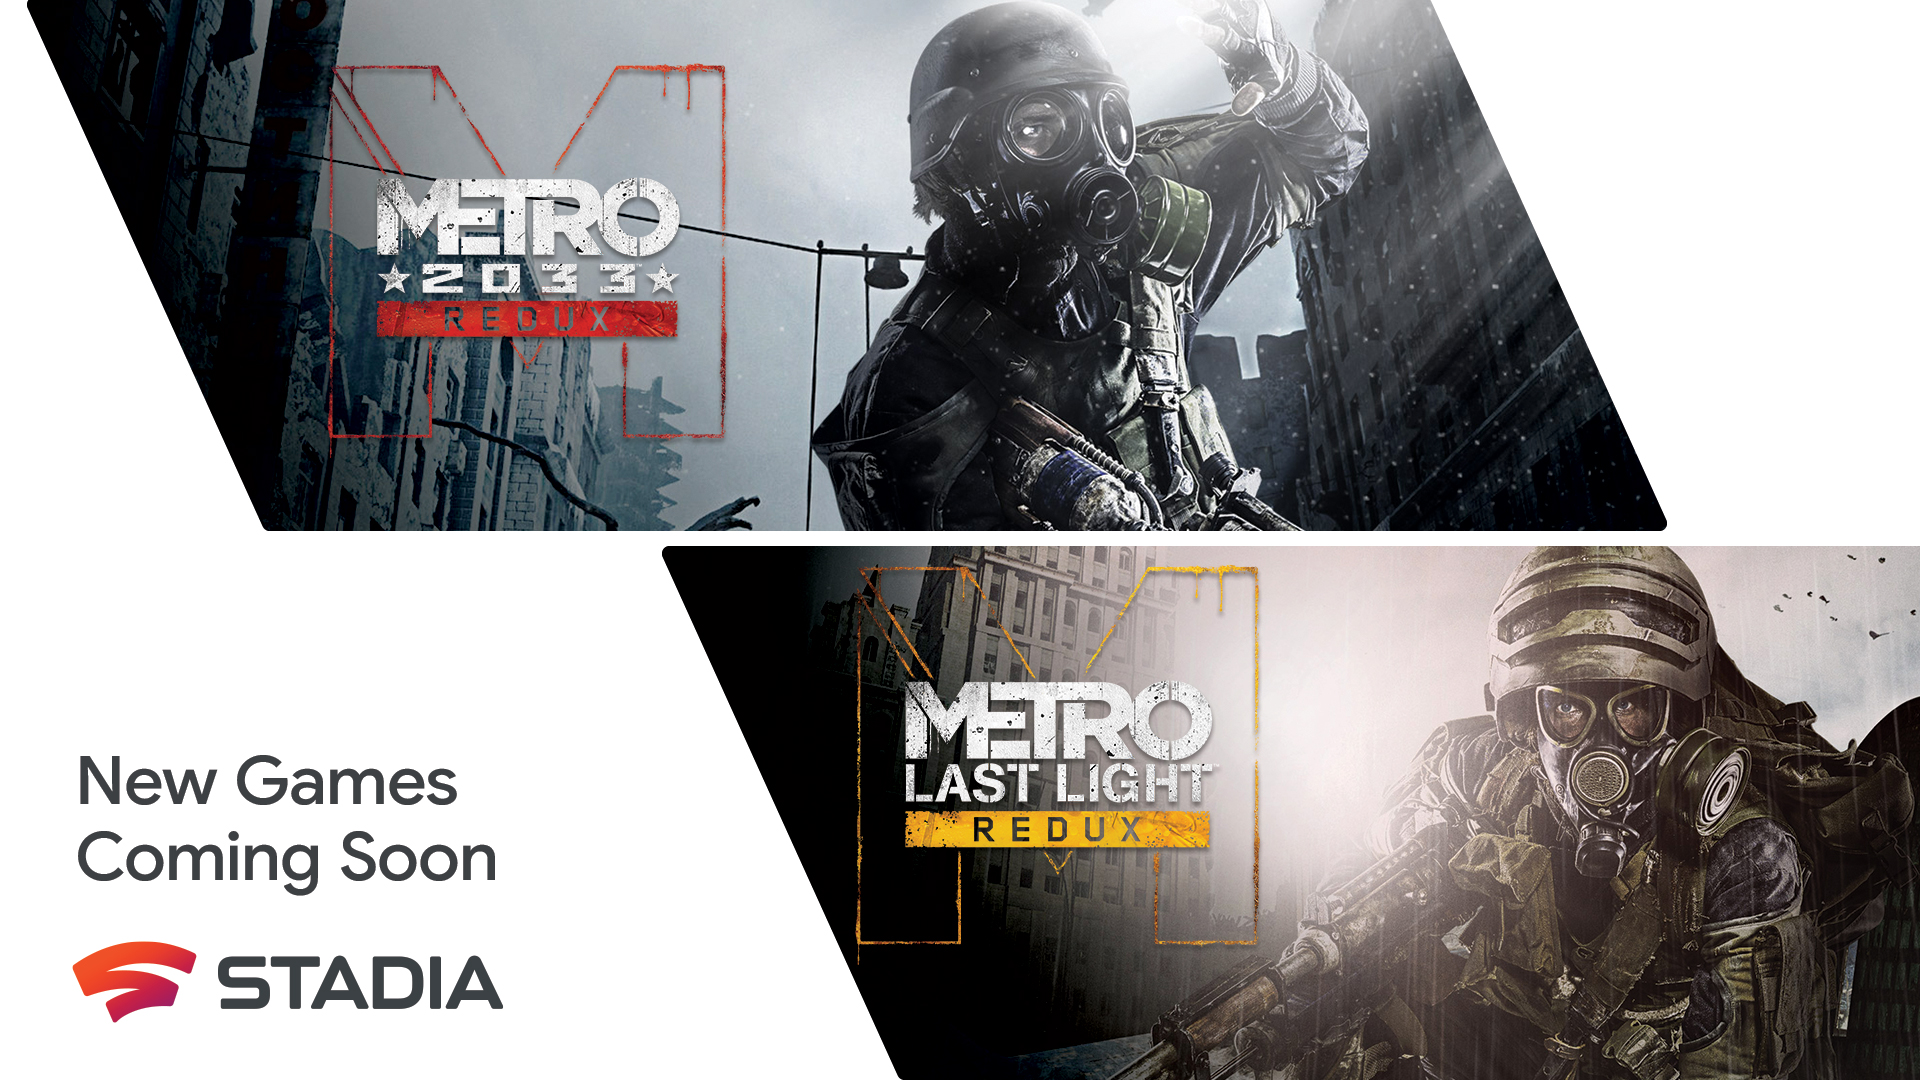 New Metro Games Coming Soon To Stadia